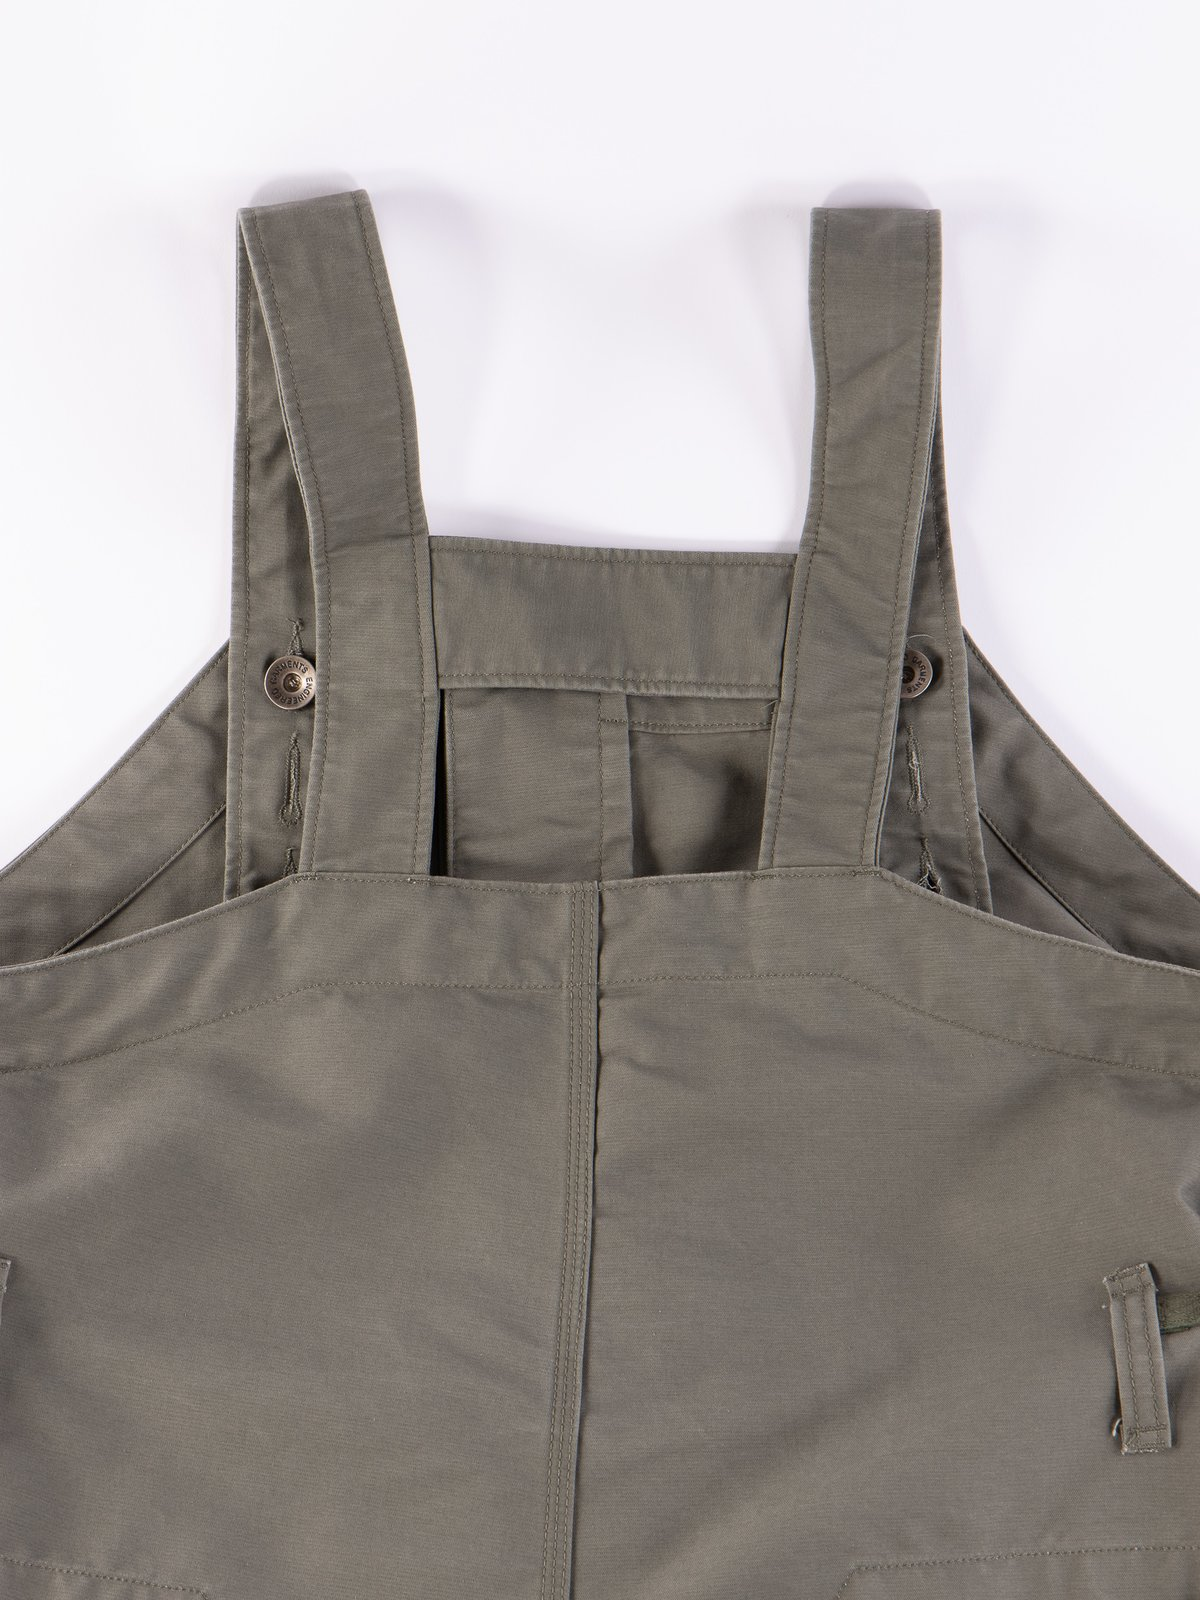 Olive Cotton Double Cloth Waders - Image 7